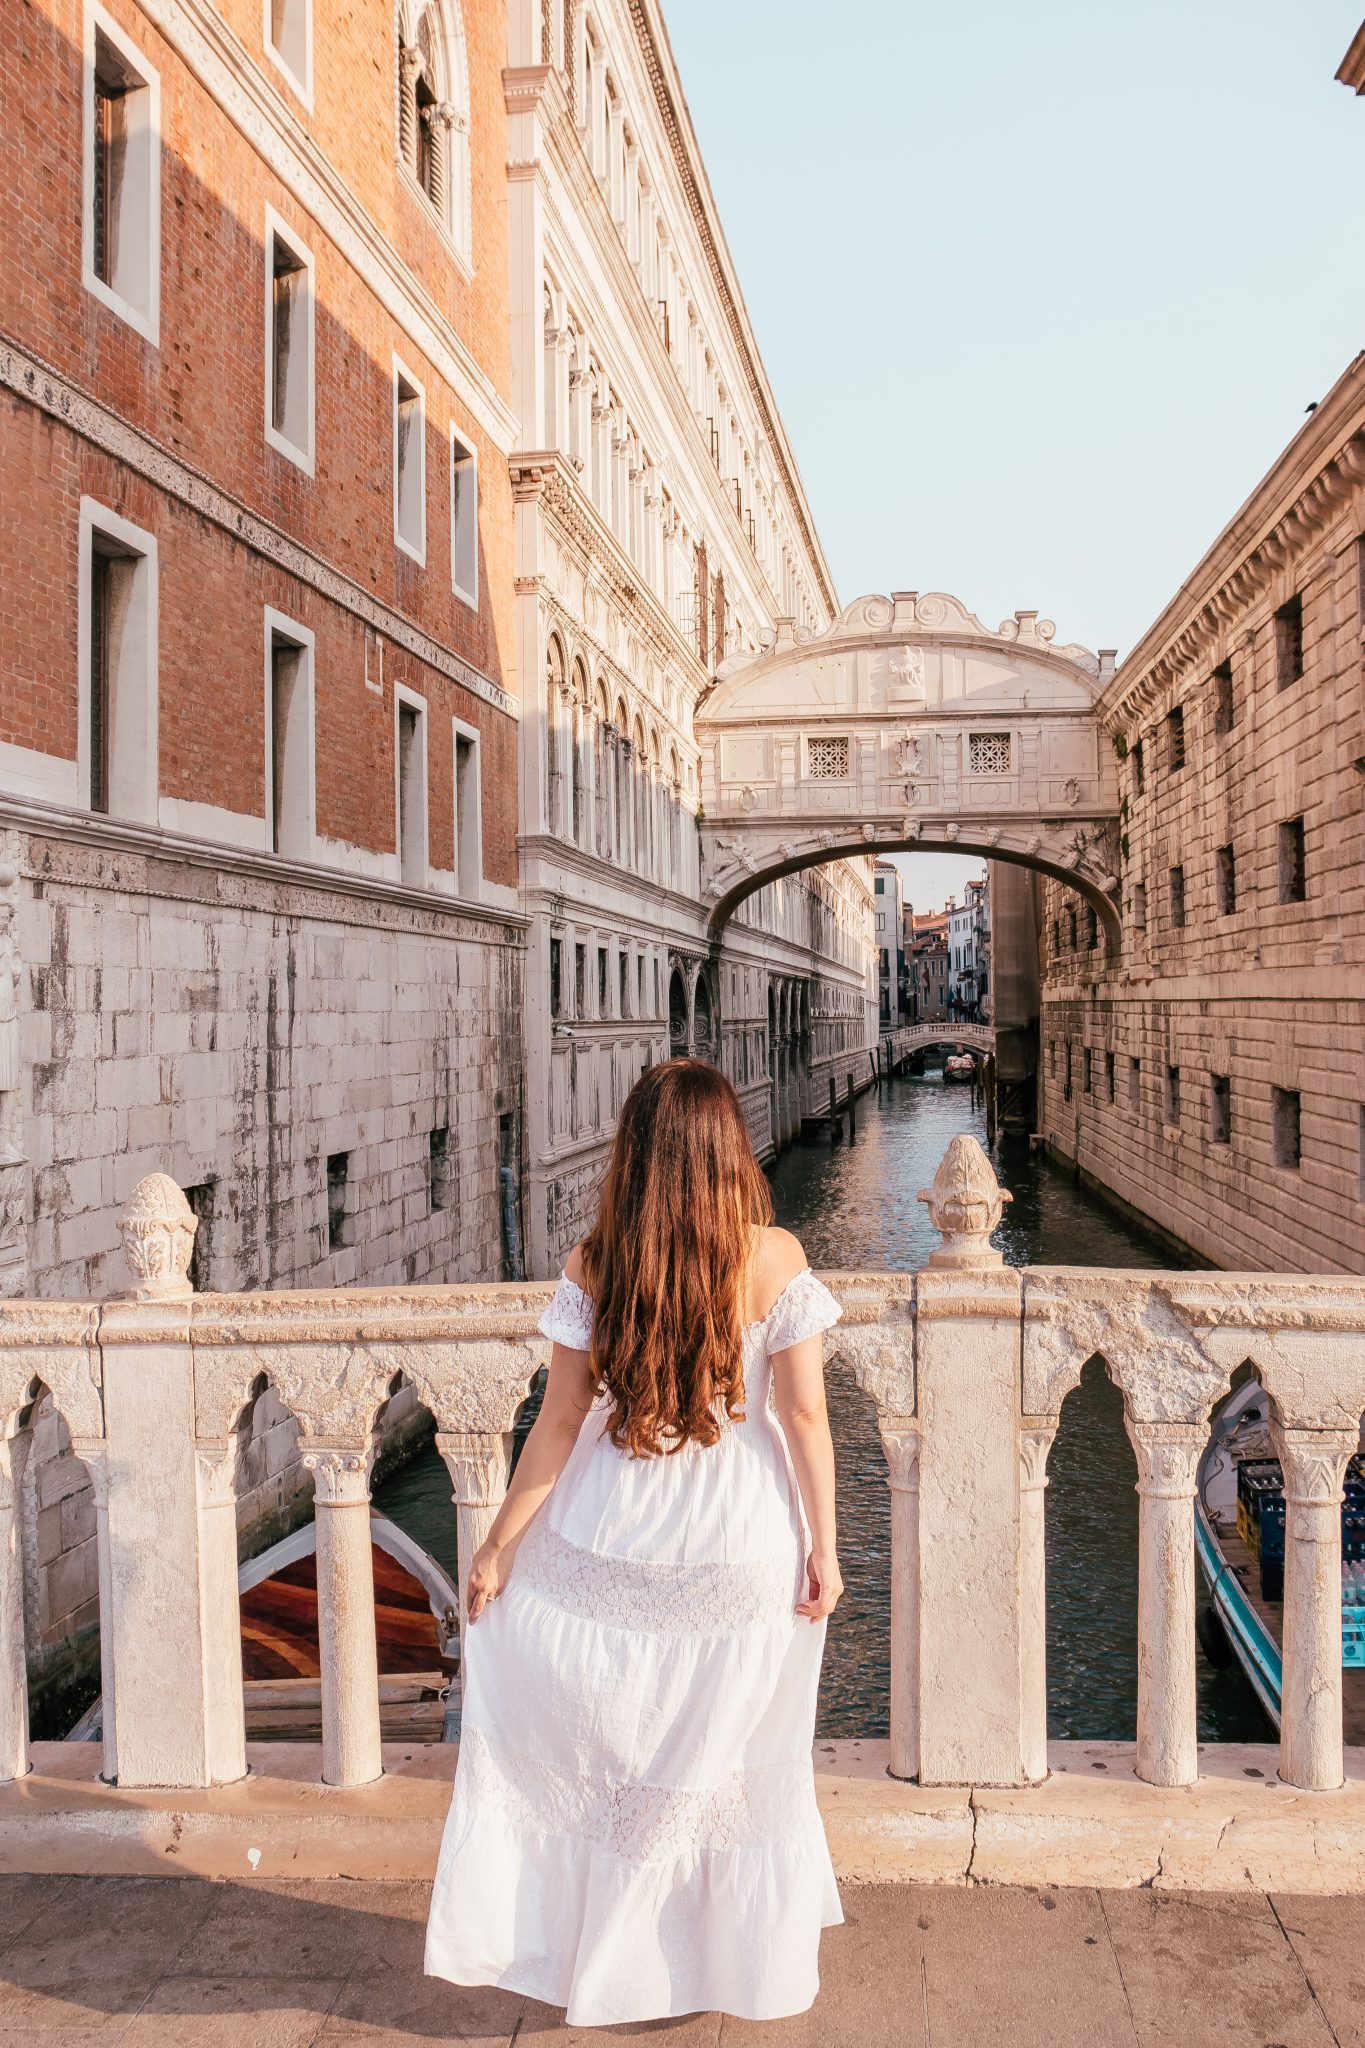 Most Instagrammable Places In Venice - Bridge of Sighs